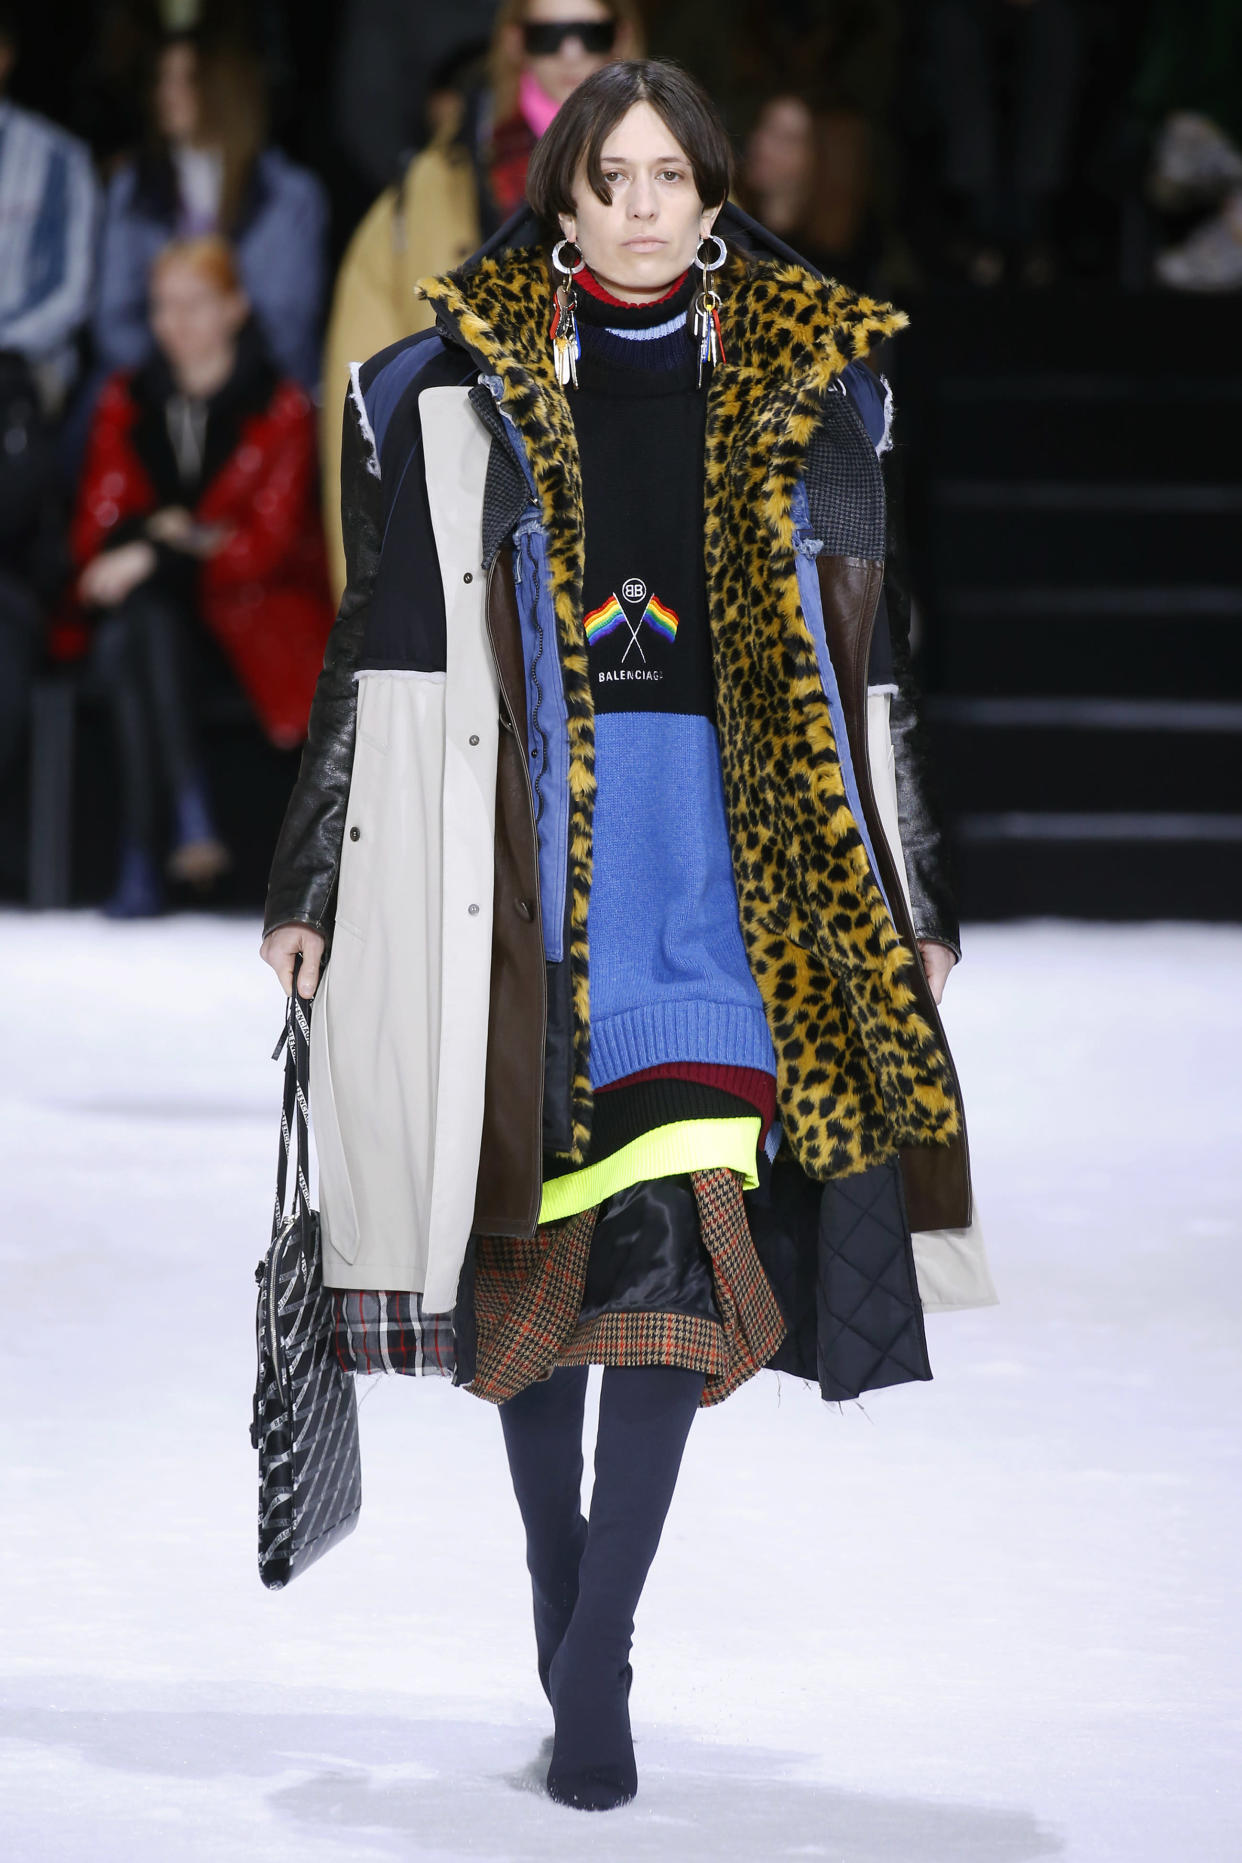 Balenciaga's AW18 collection saw models take to the runway swamped in layers of coats [Photo: Getty]